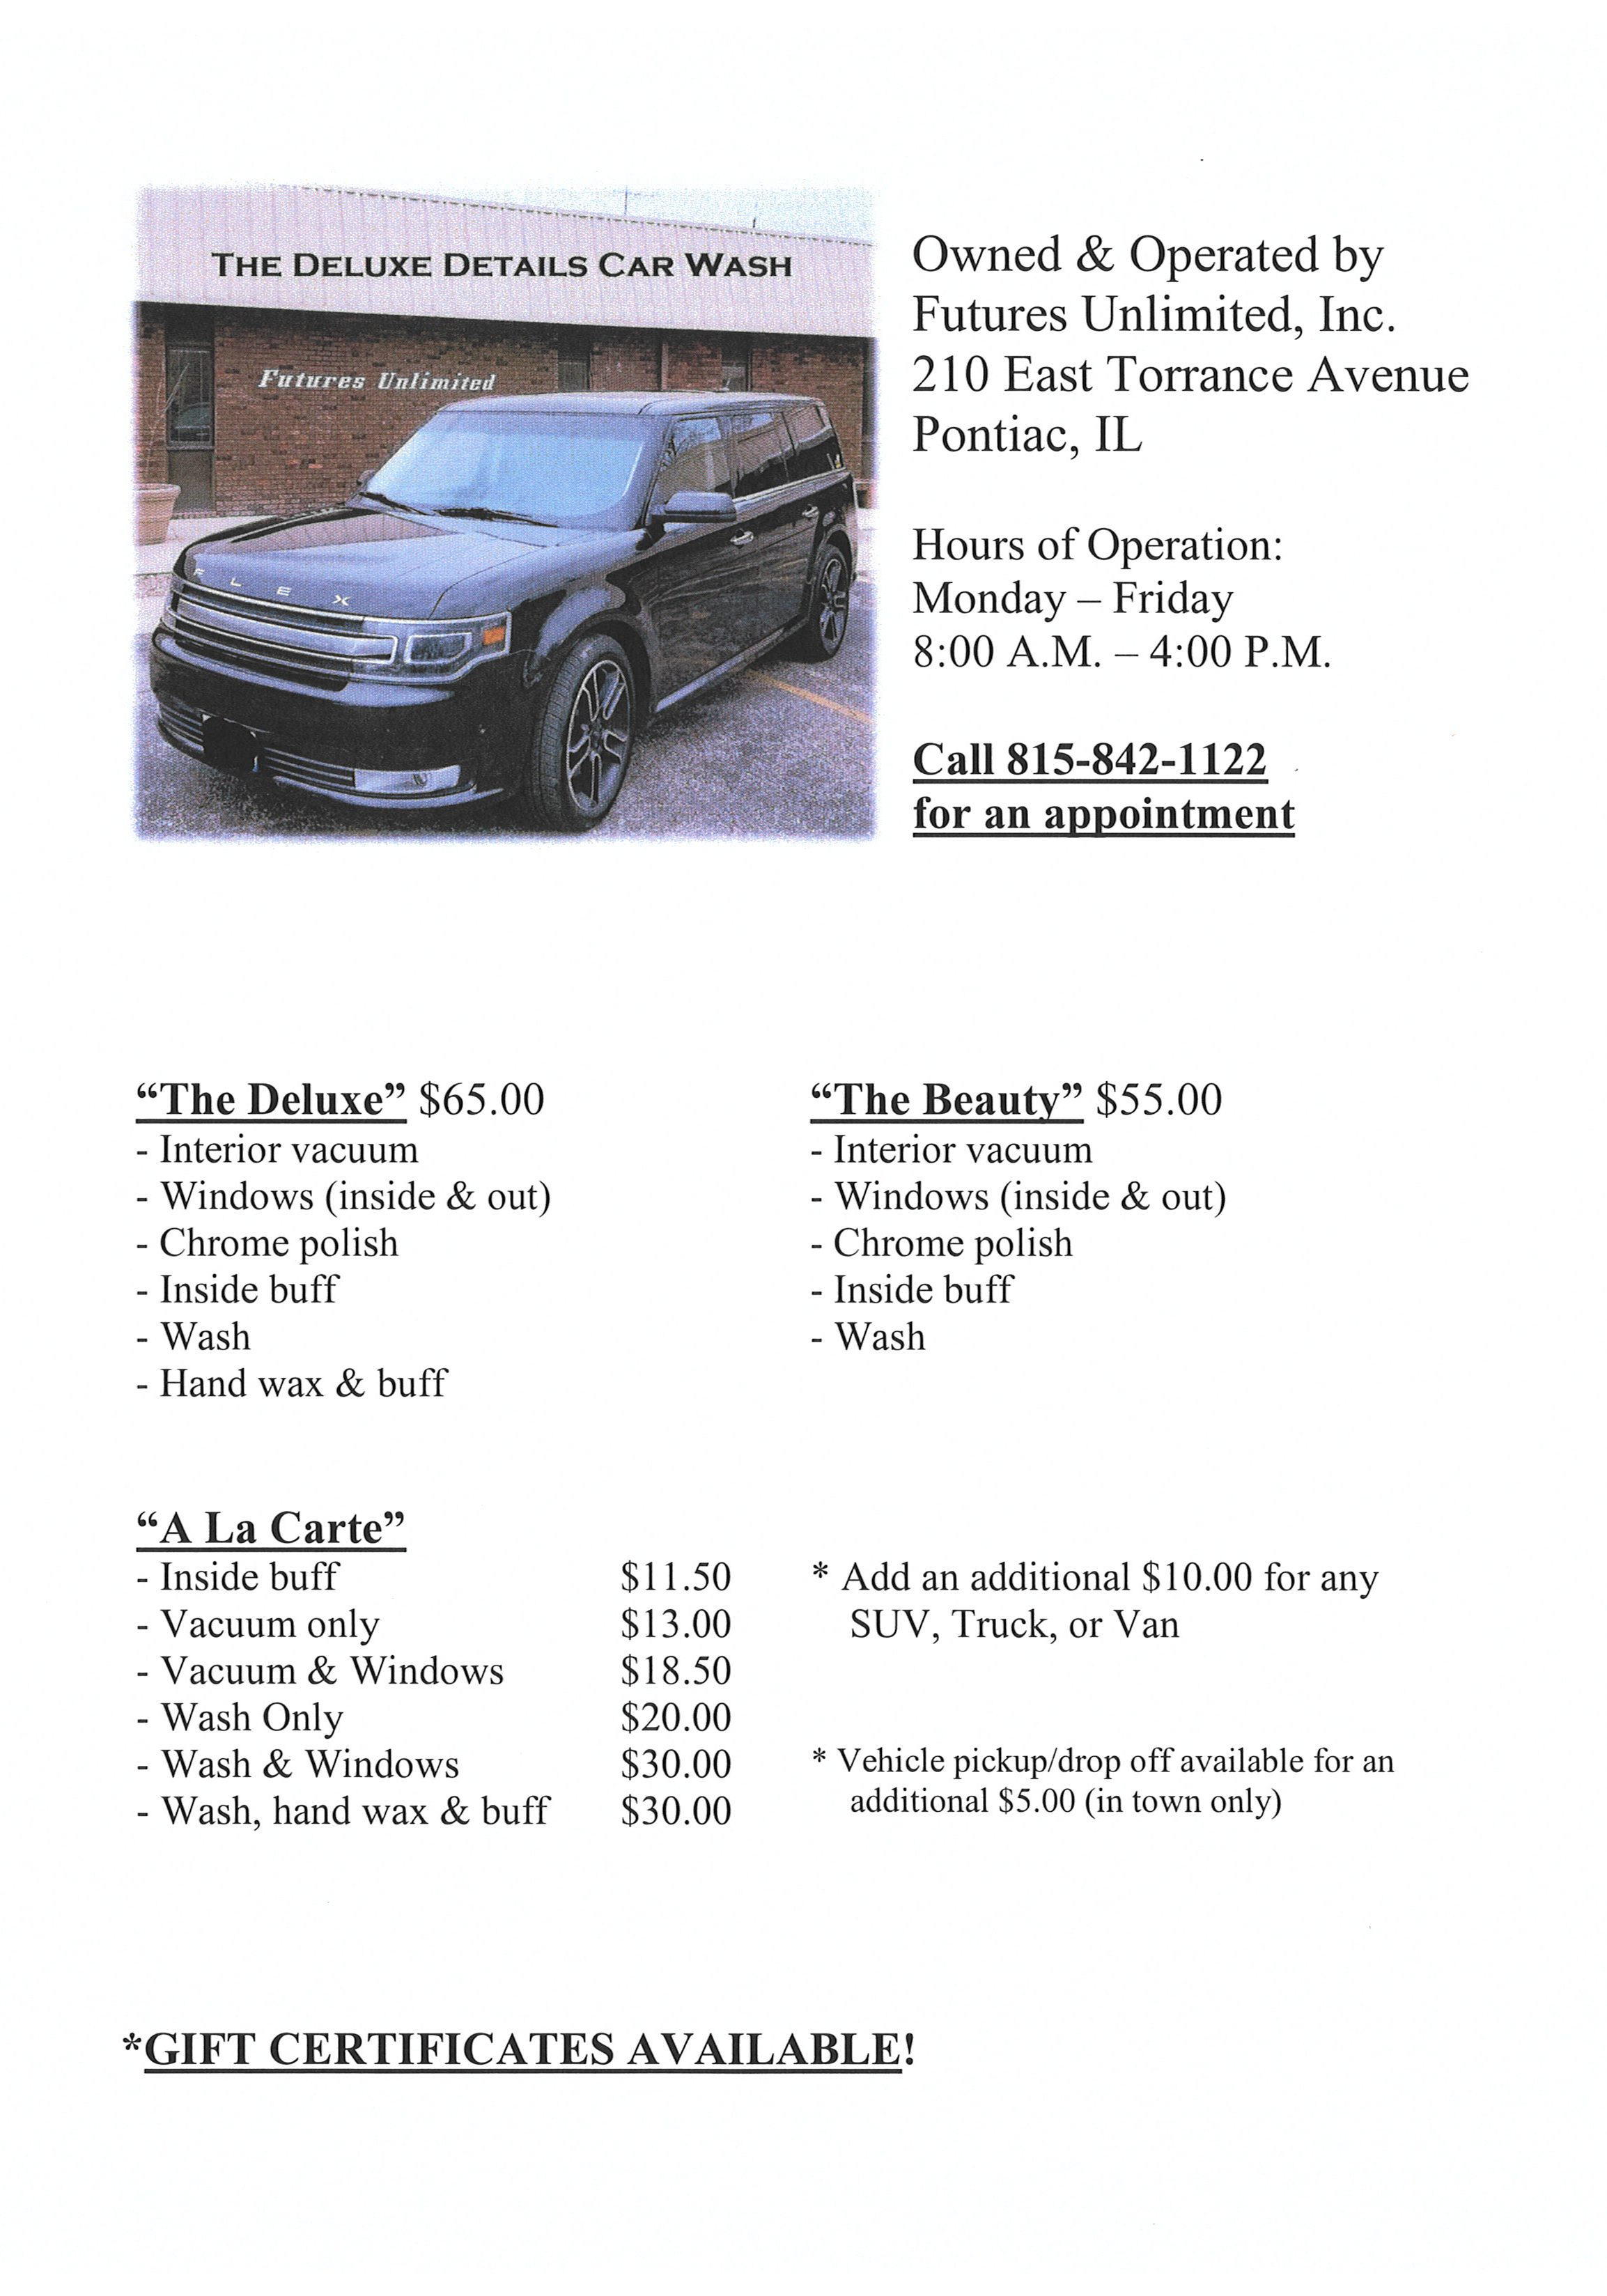 Deluxe Details Car Detailing Flyer updated 2019